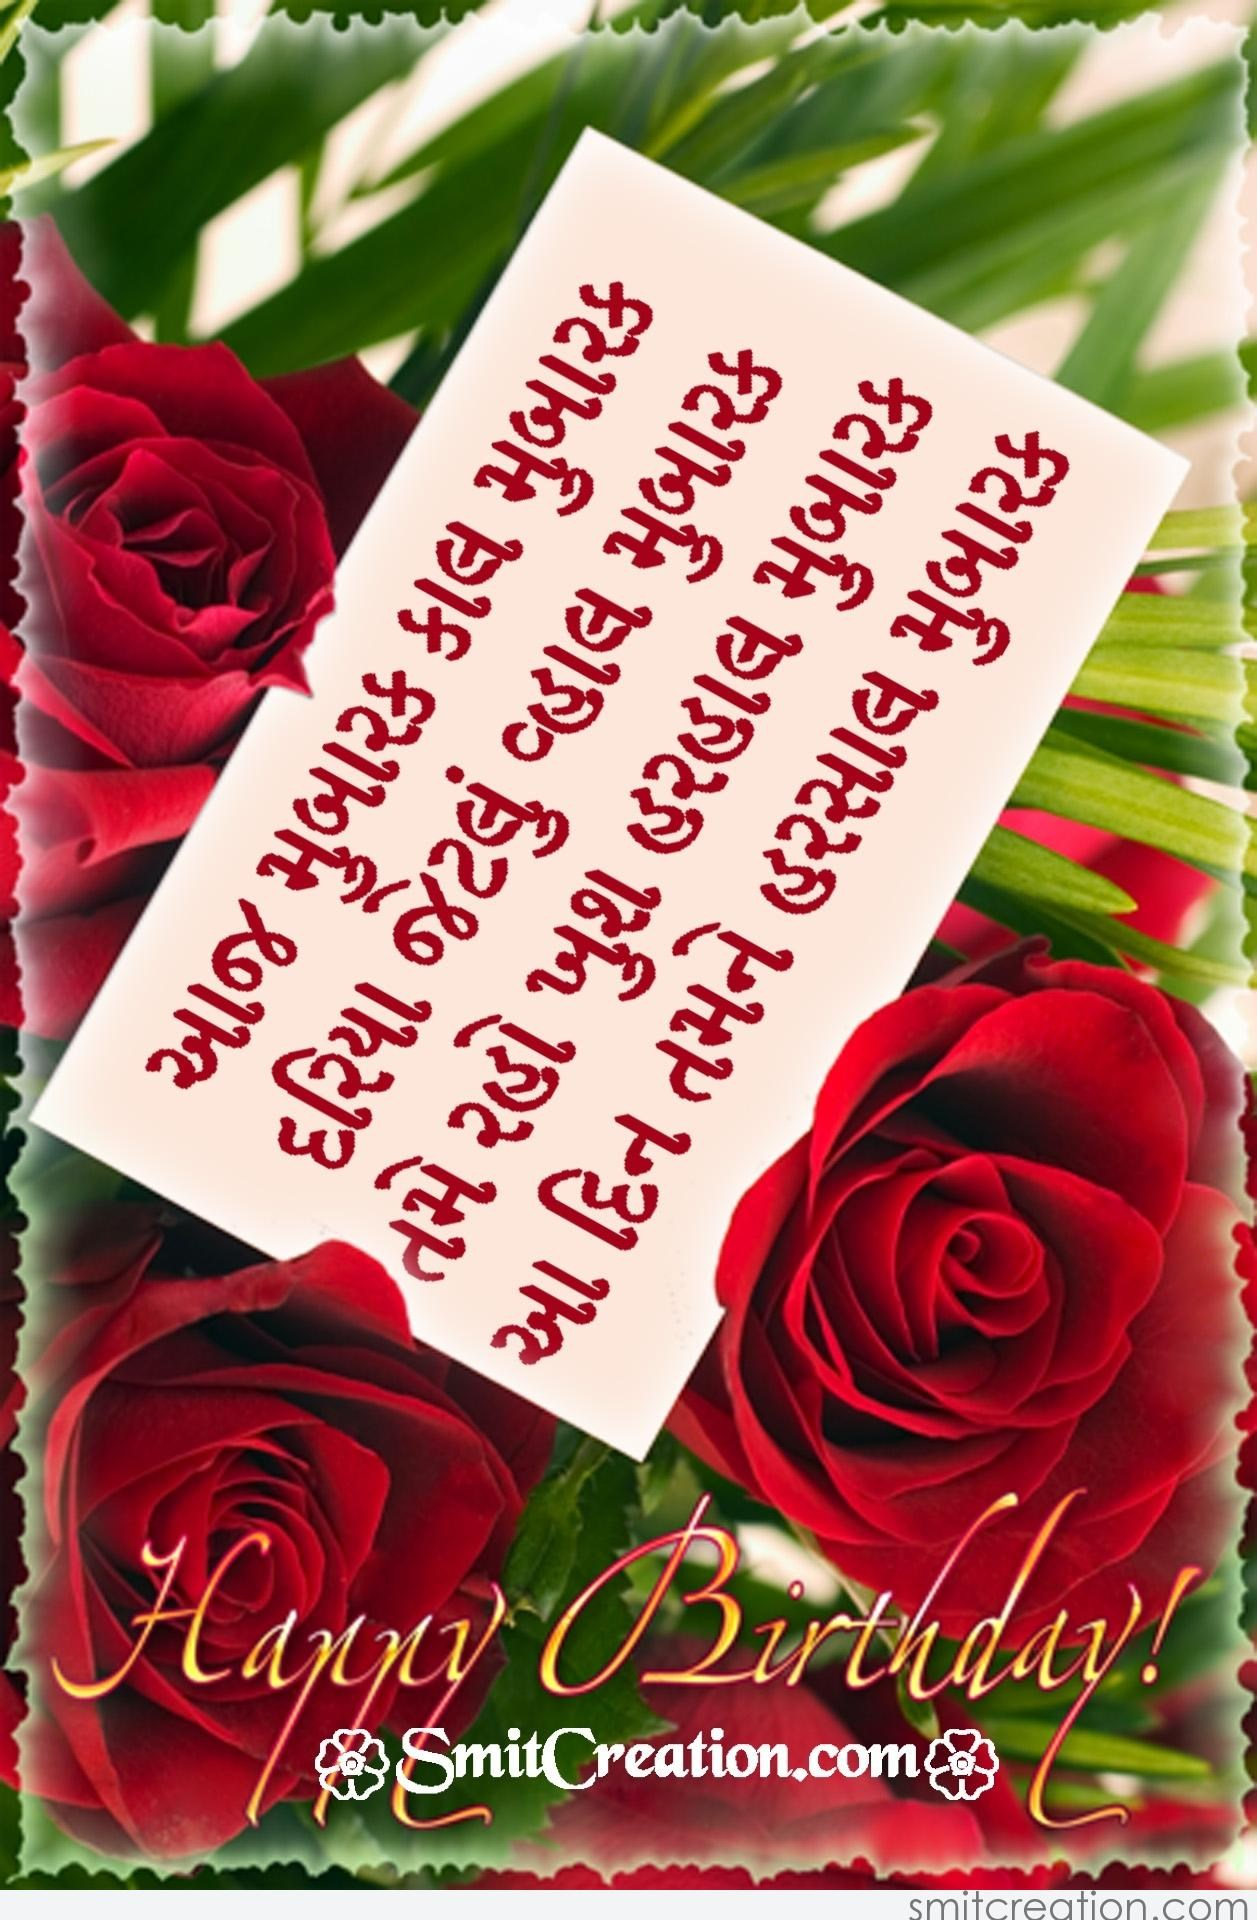 Birthday wishes in gujarati with rose images